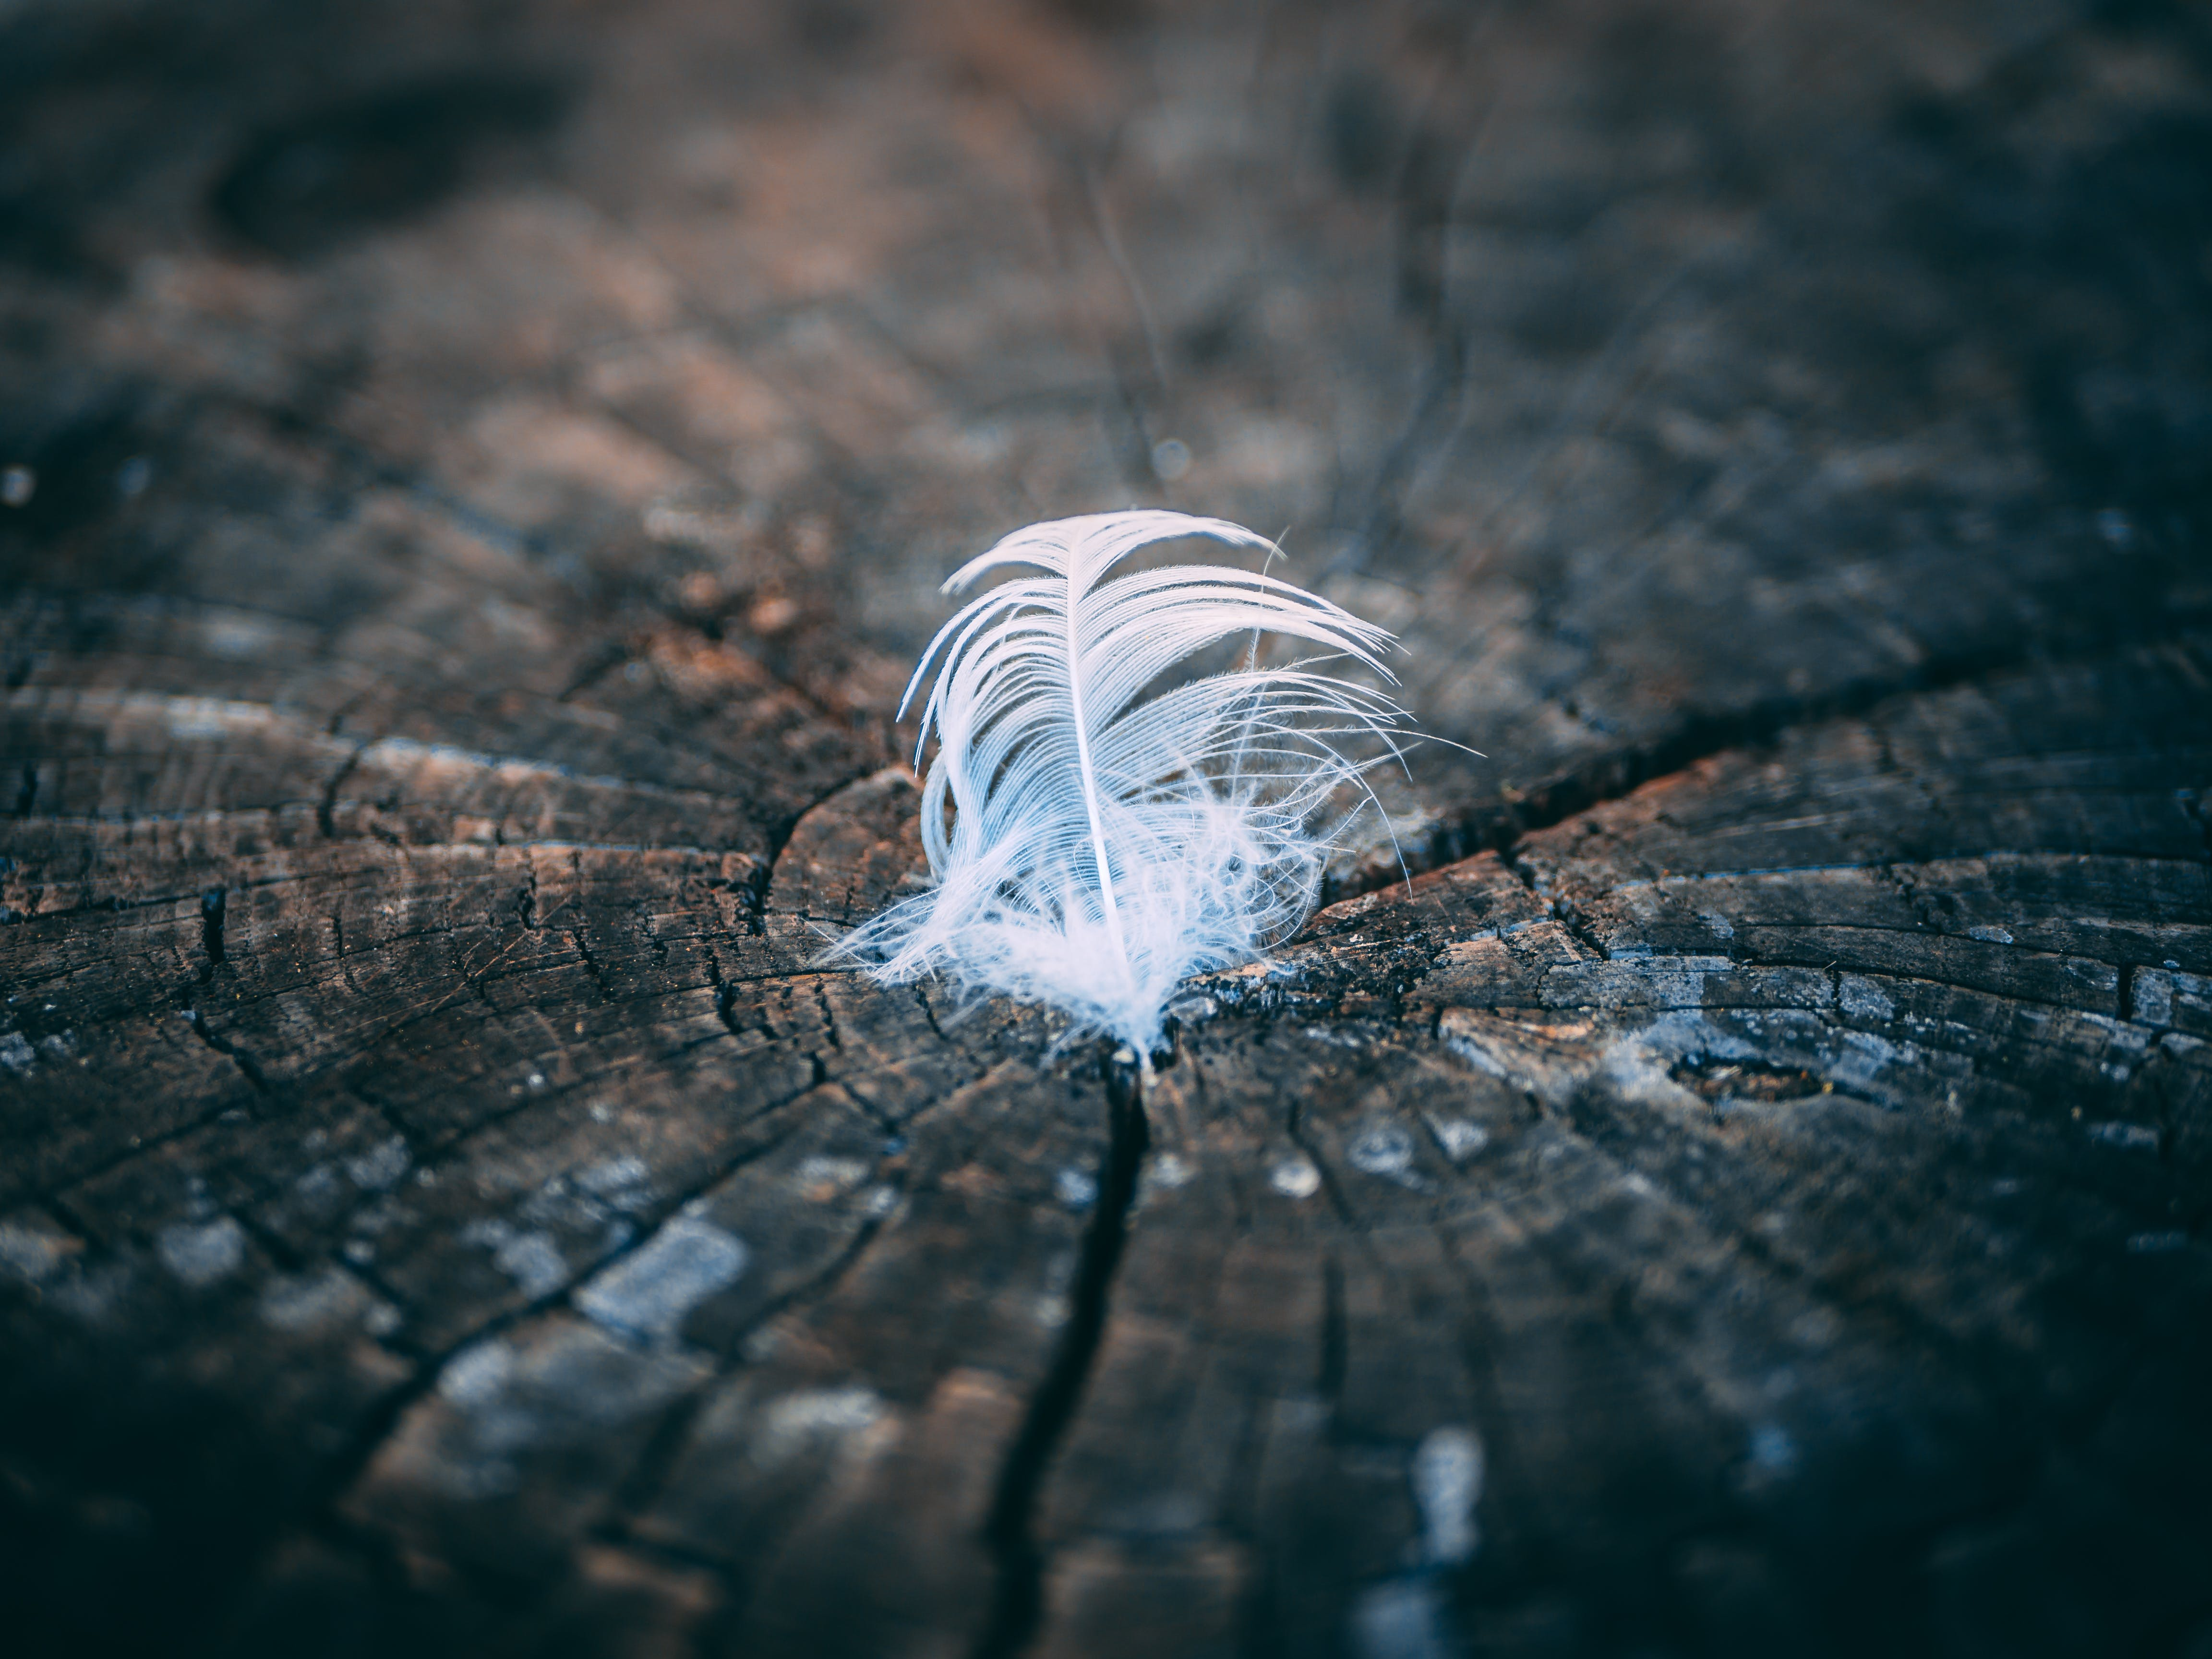 Close-Up Photography of Feather on Tree Stump